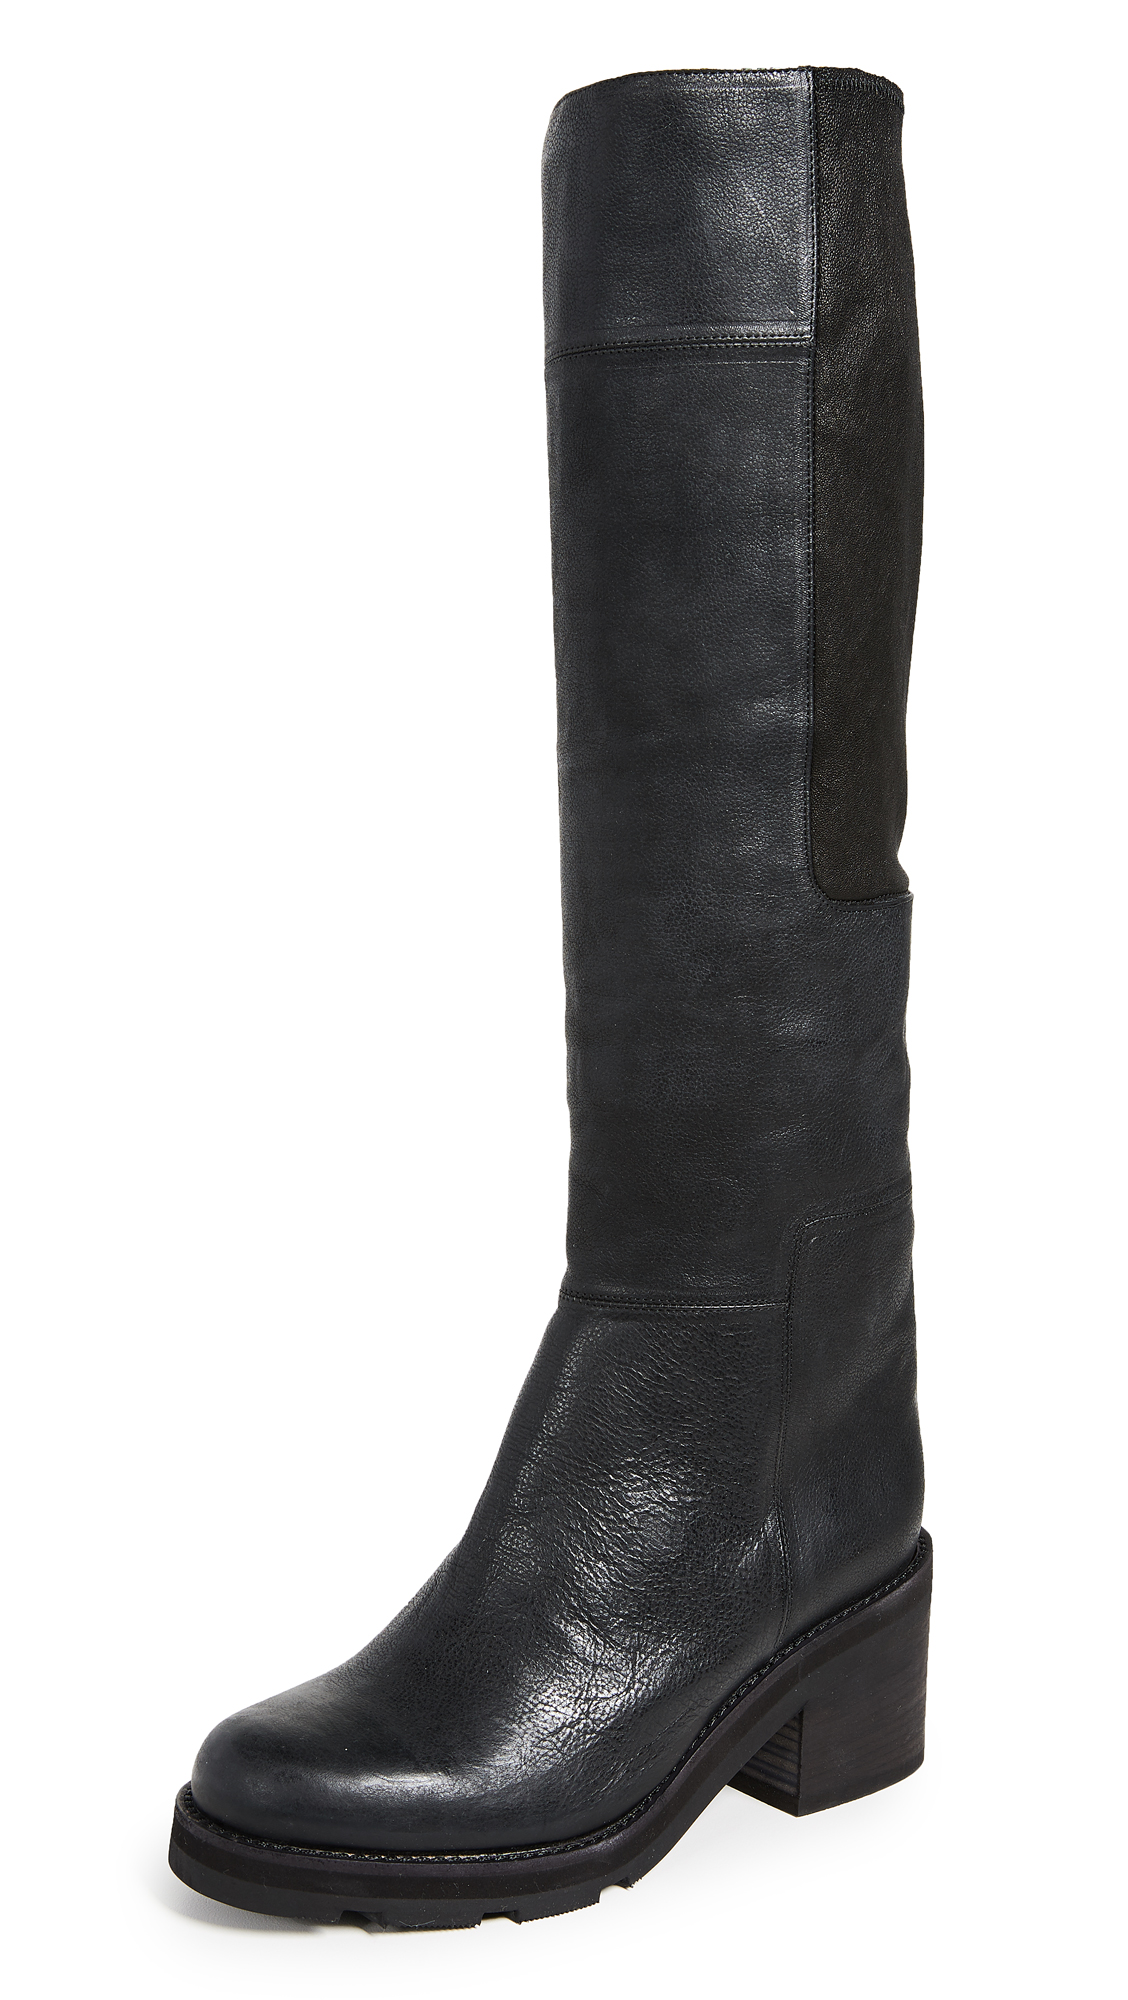 LD Tuttle The Lost Lug Sole Boots - Black